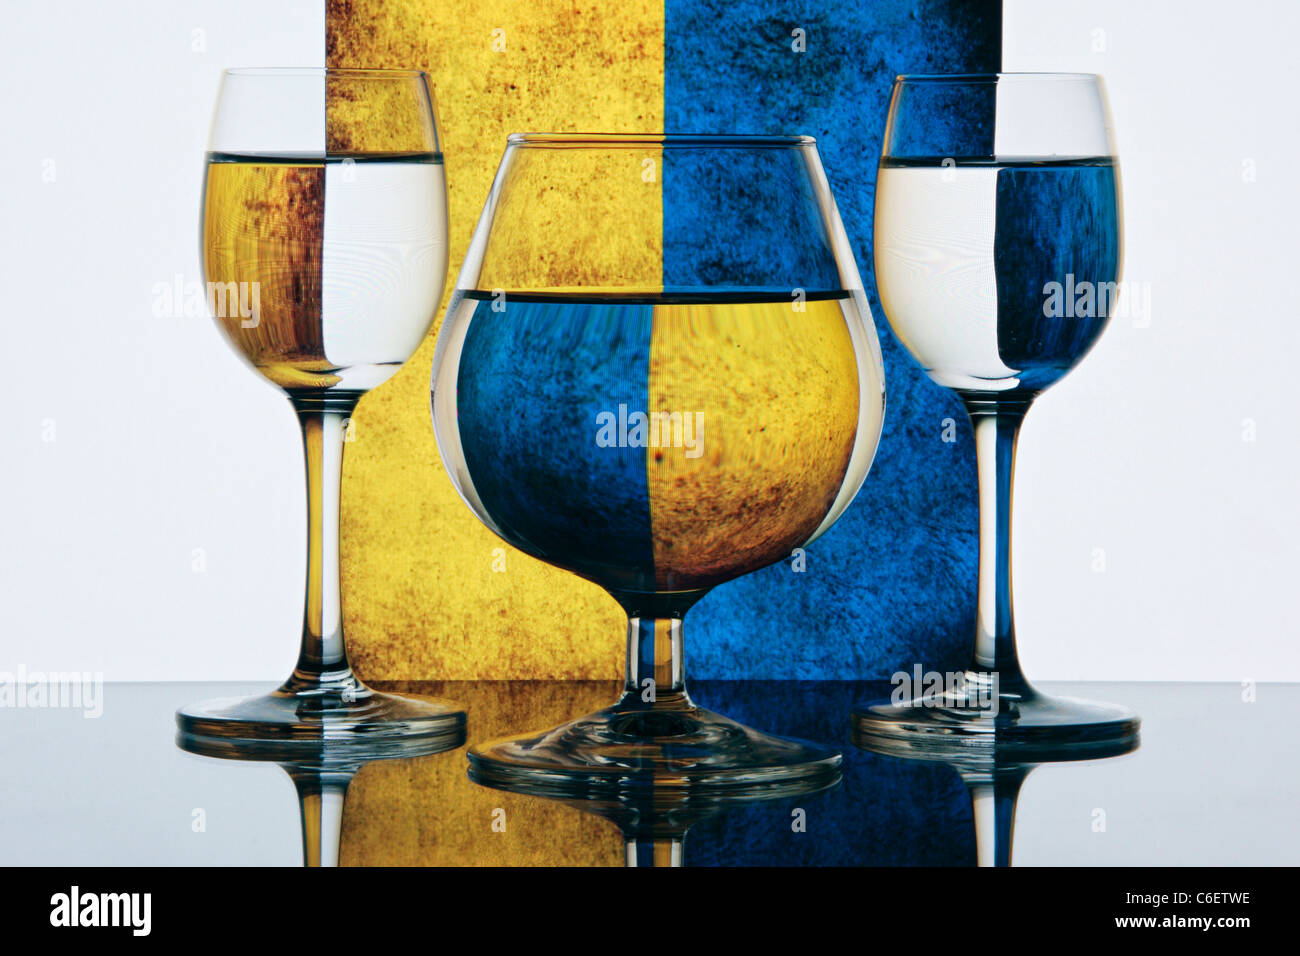 Still life - Glasses on colorful yellow and blue background Stock Photo